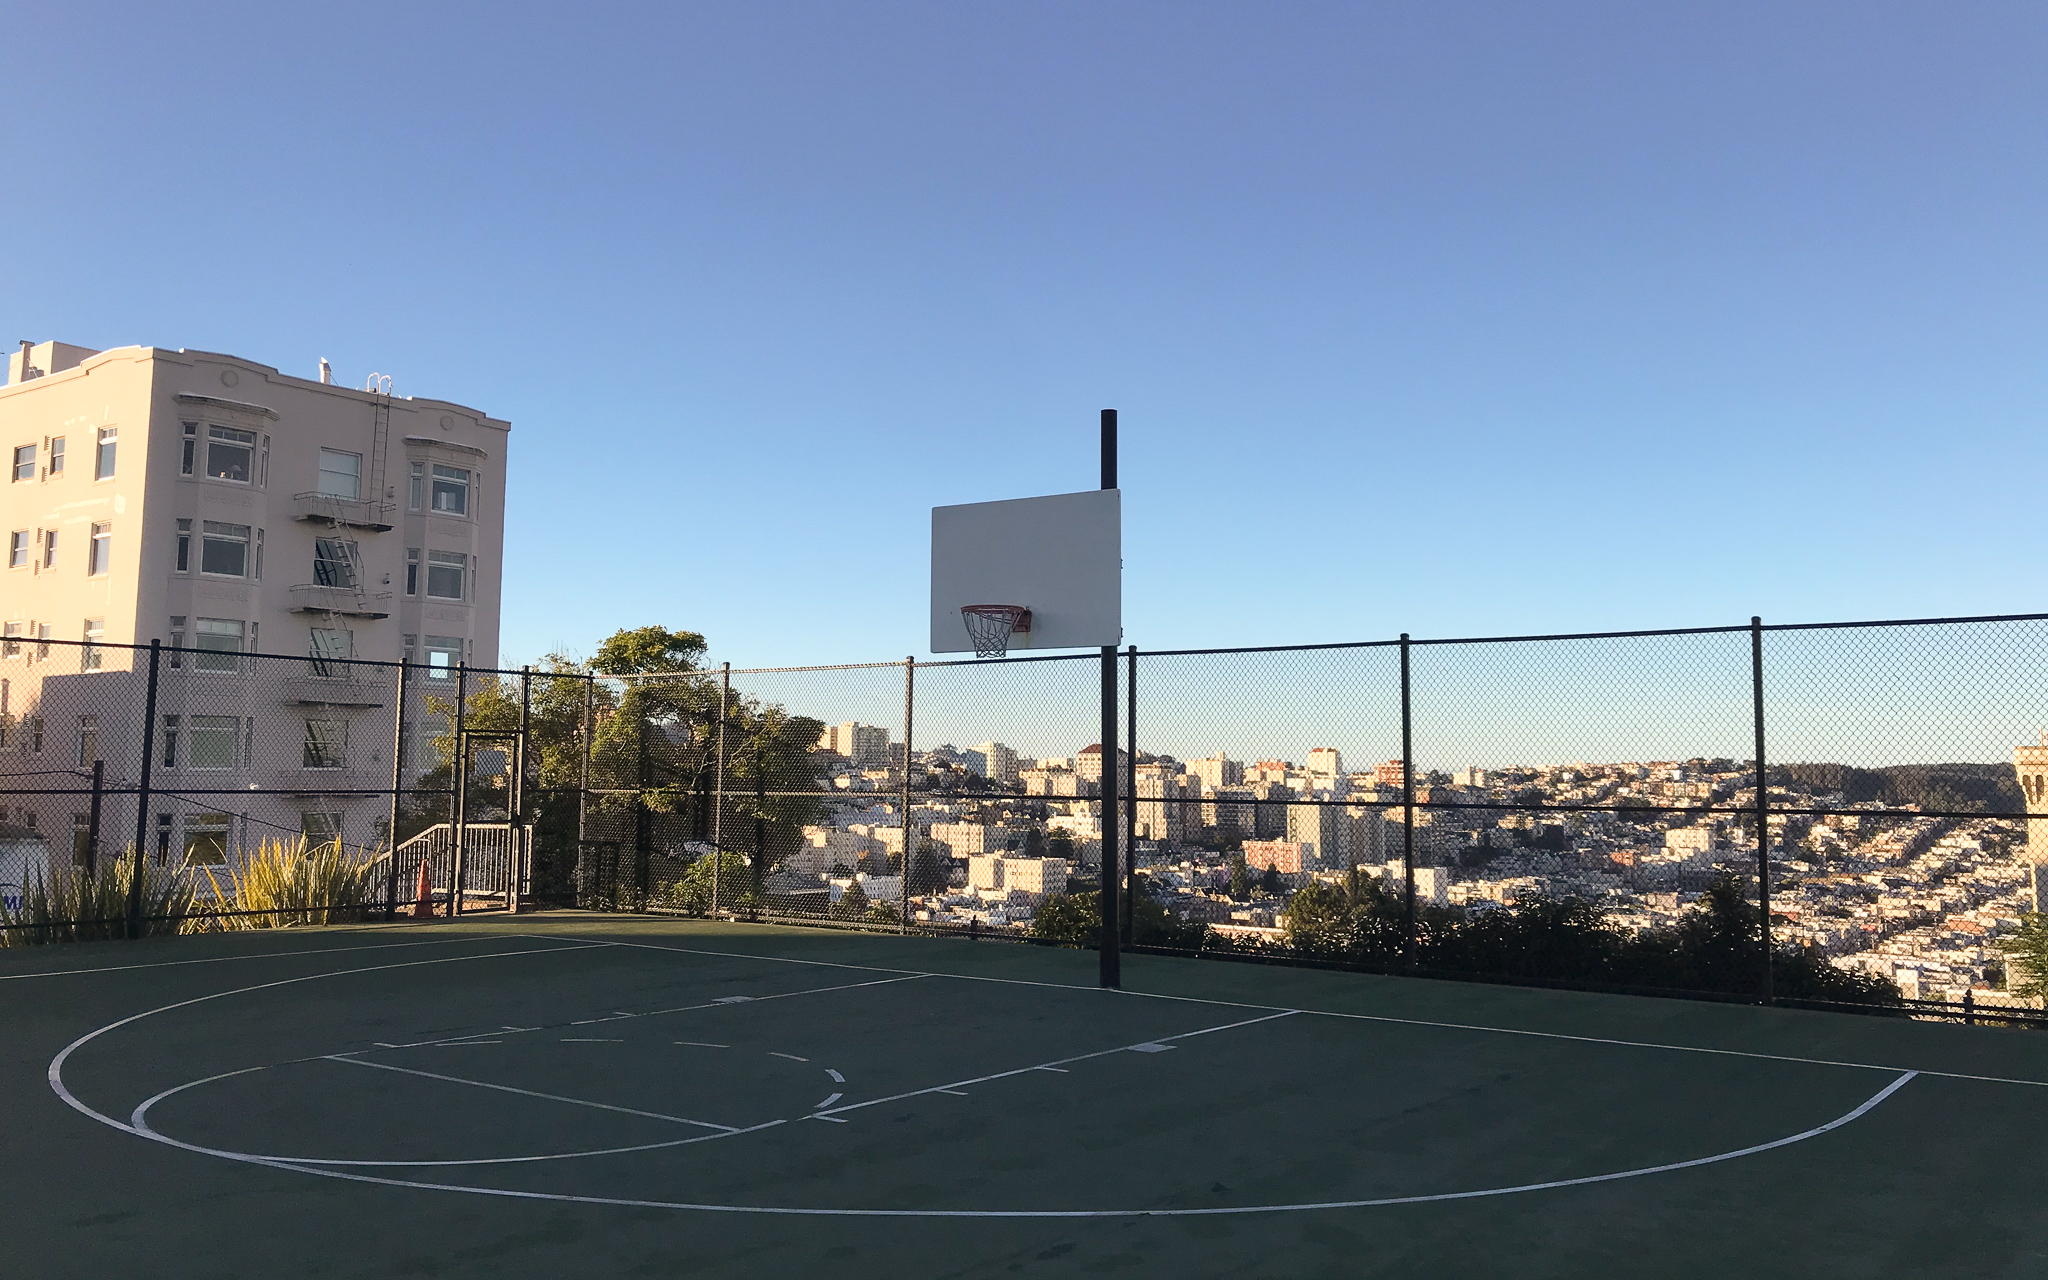 Basketball in San Francisco